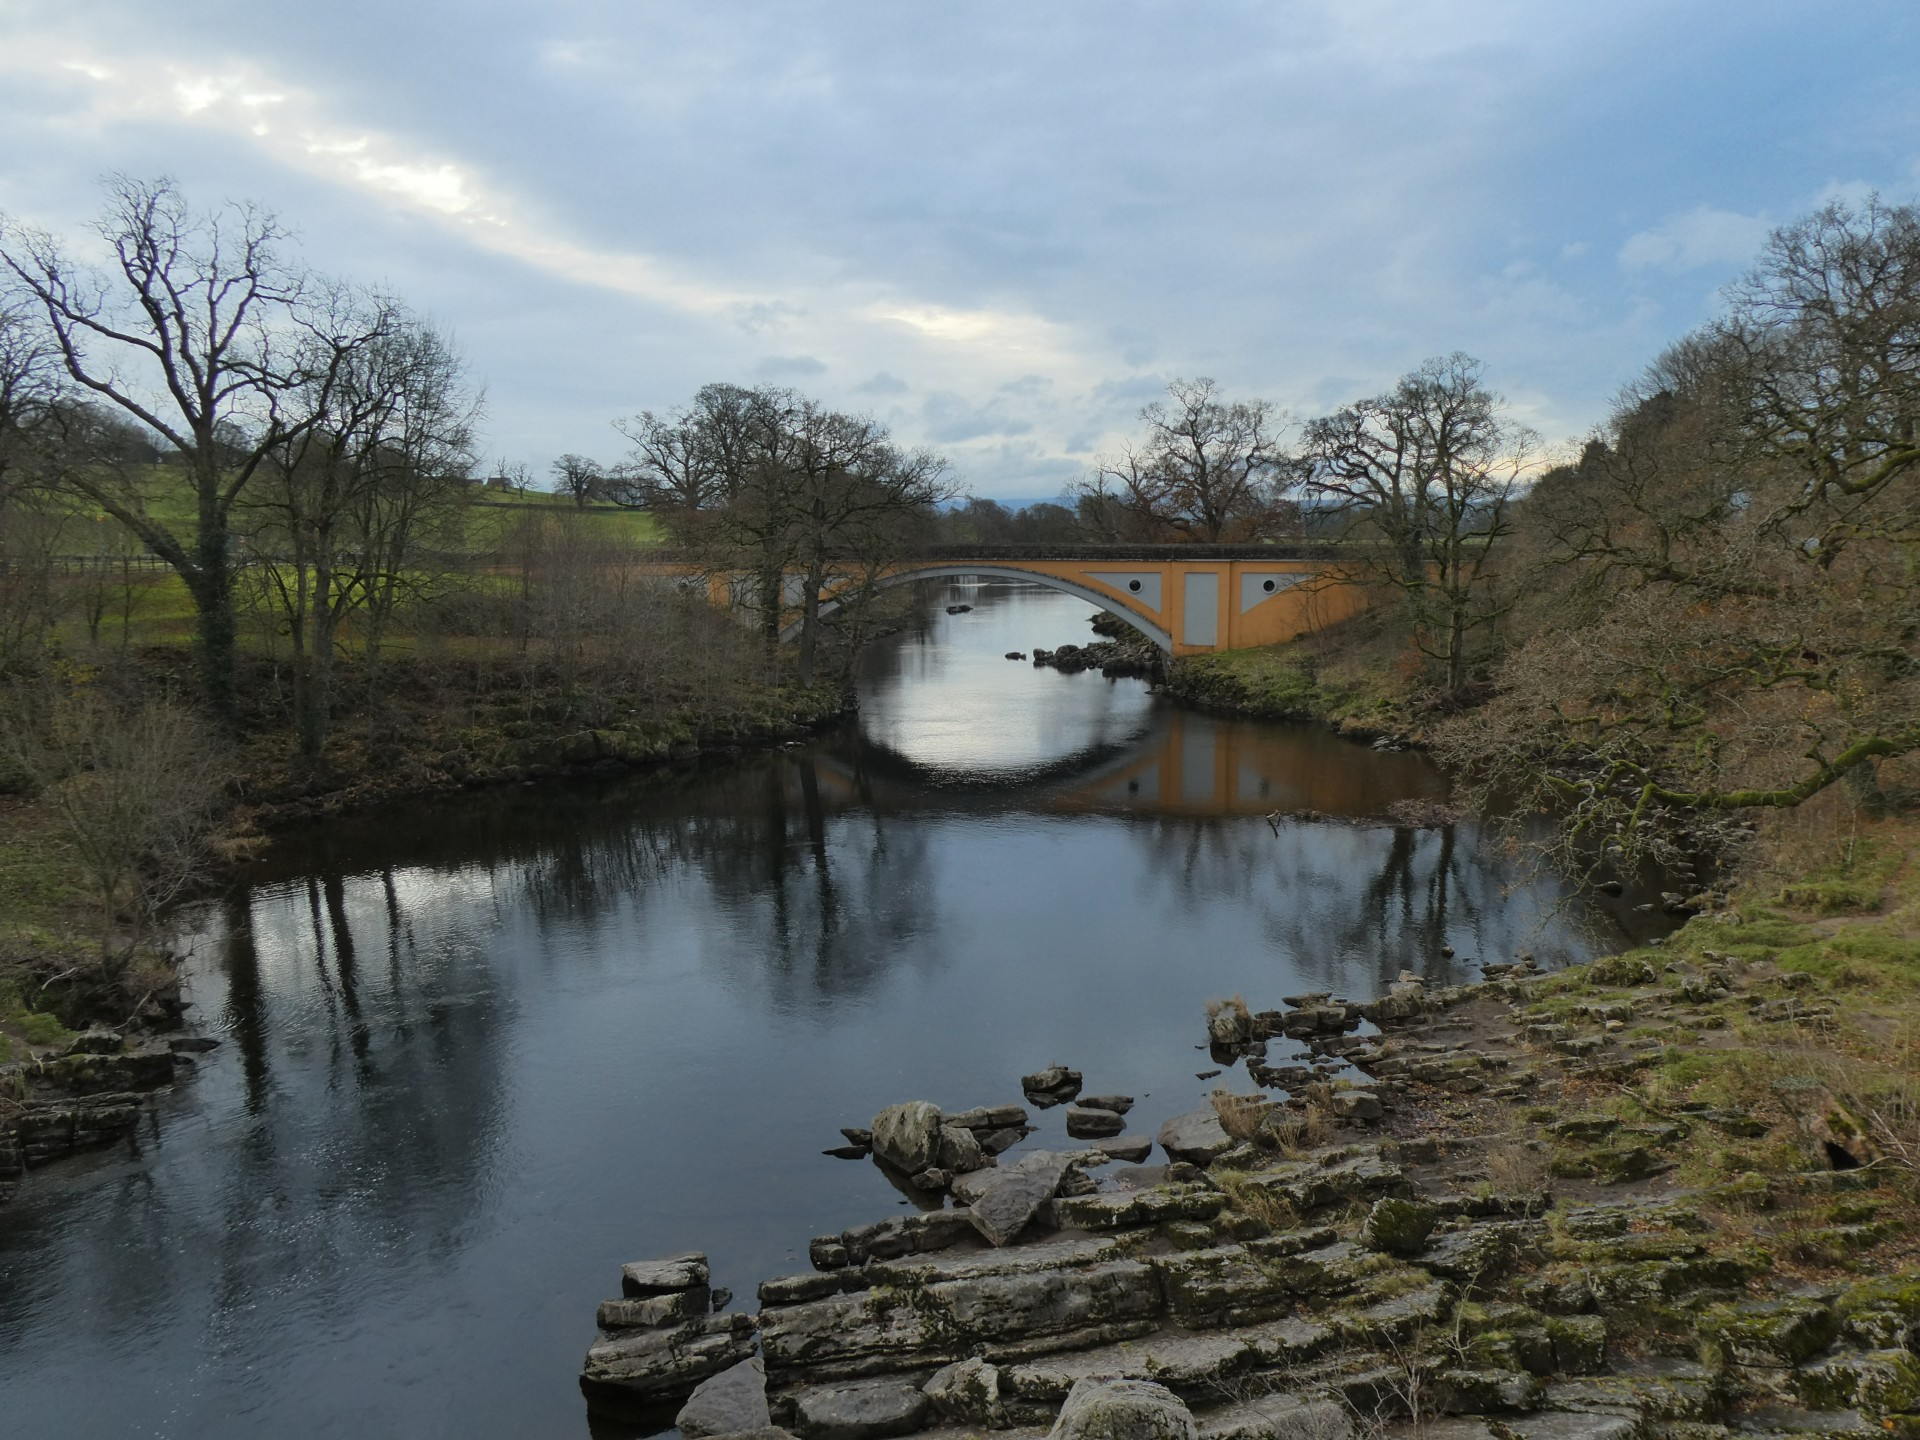 Devil's Bridge, the road bridge